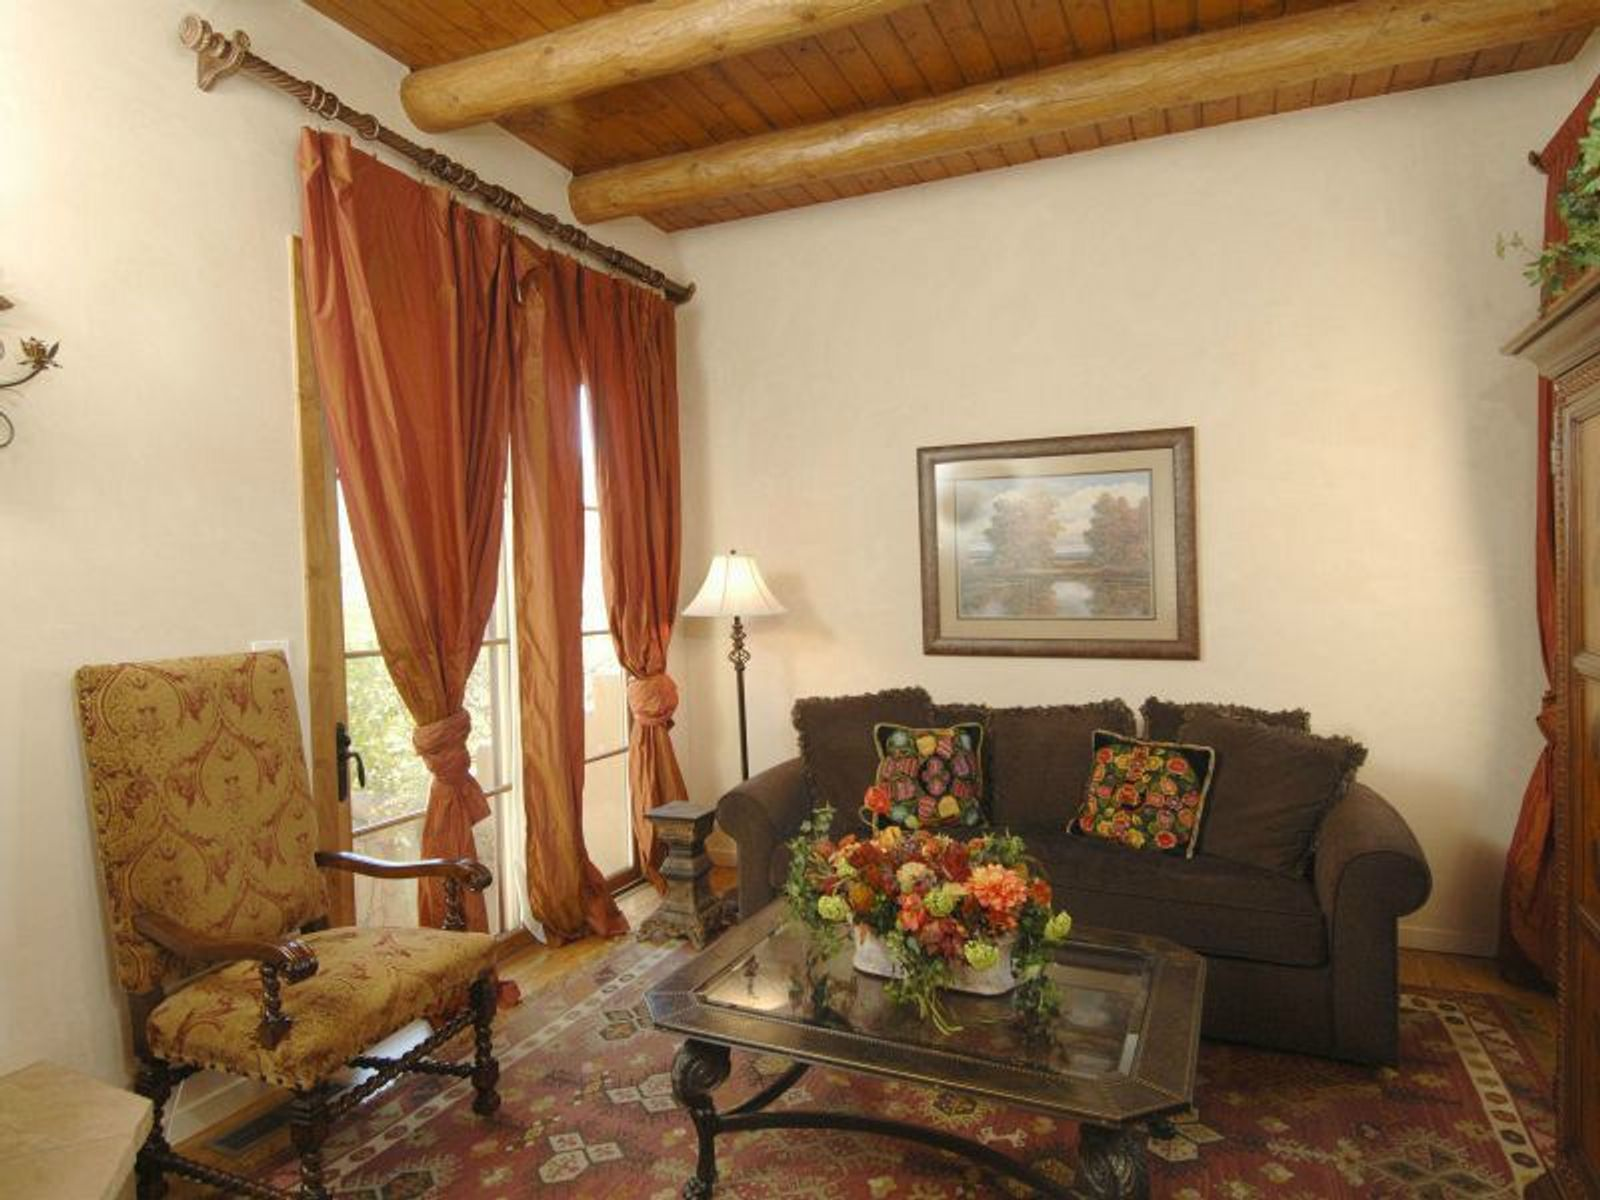 604 Sunset Street C, Santa Fe NM Condominium - Santa Fe Real Estate